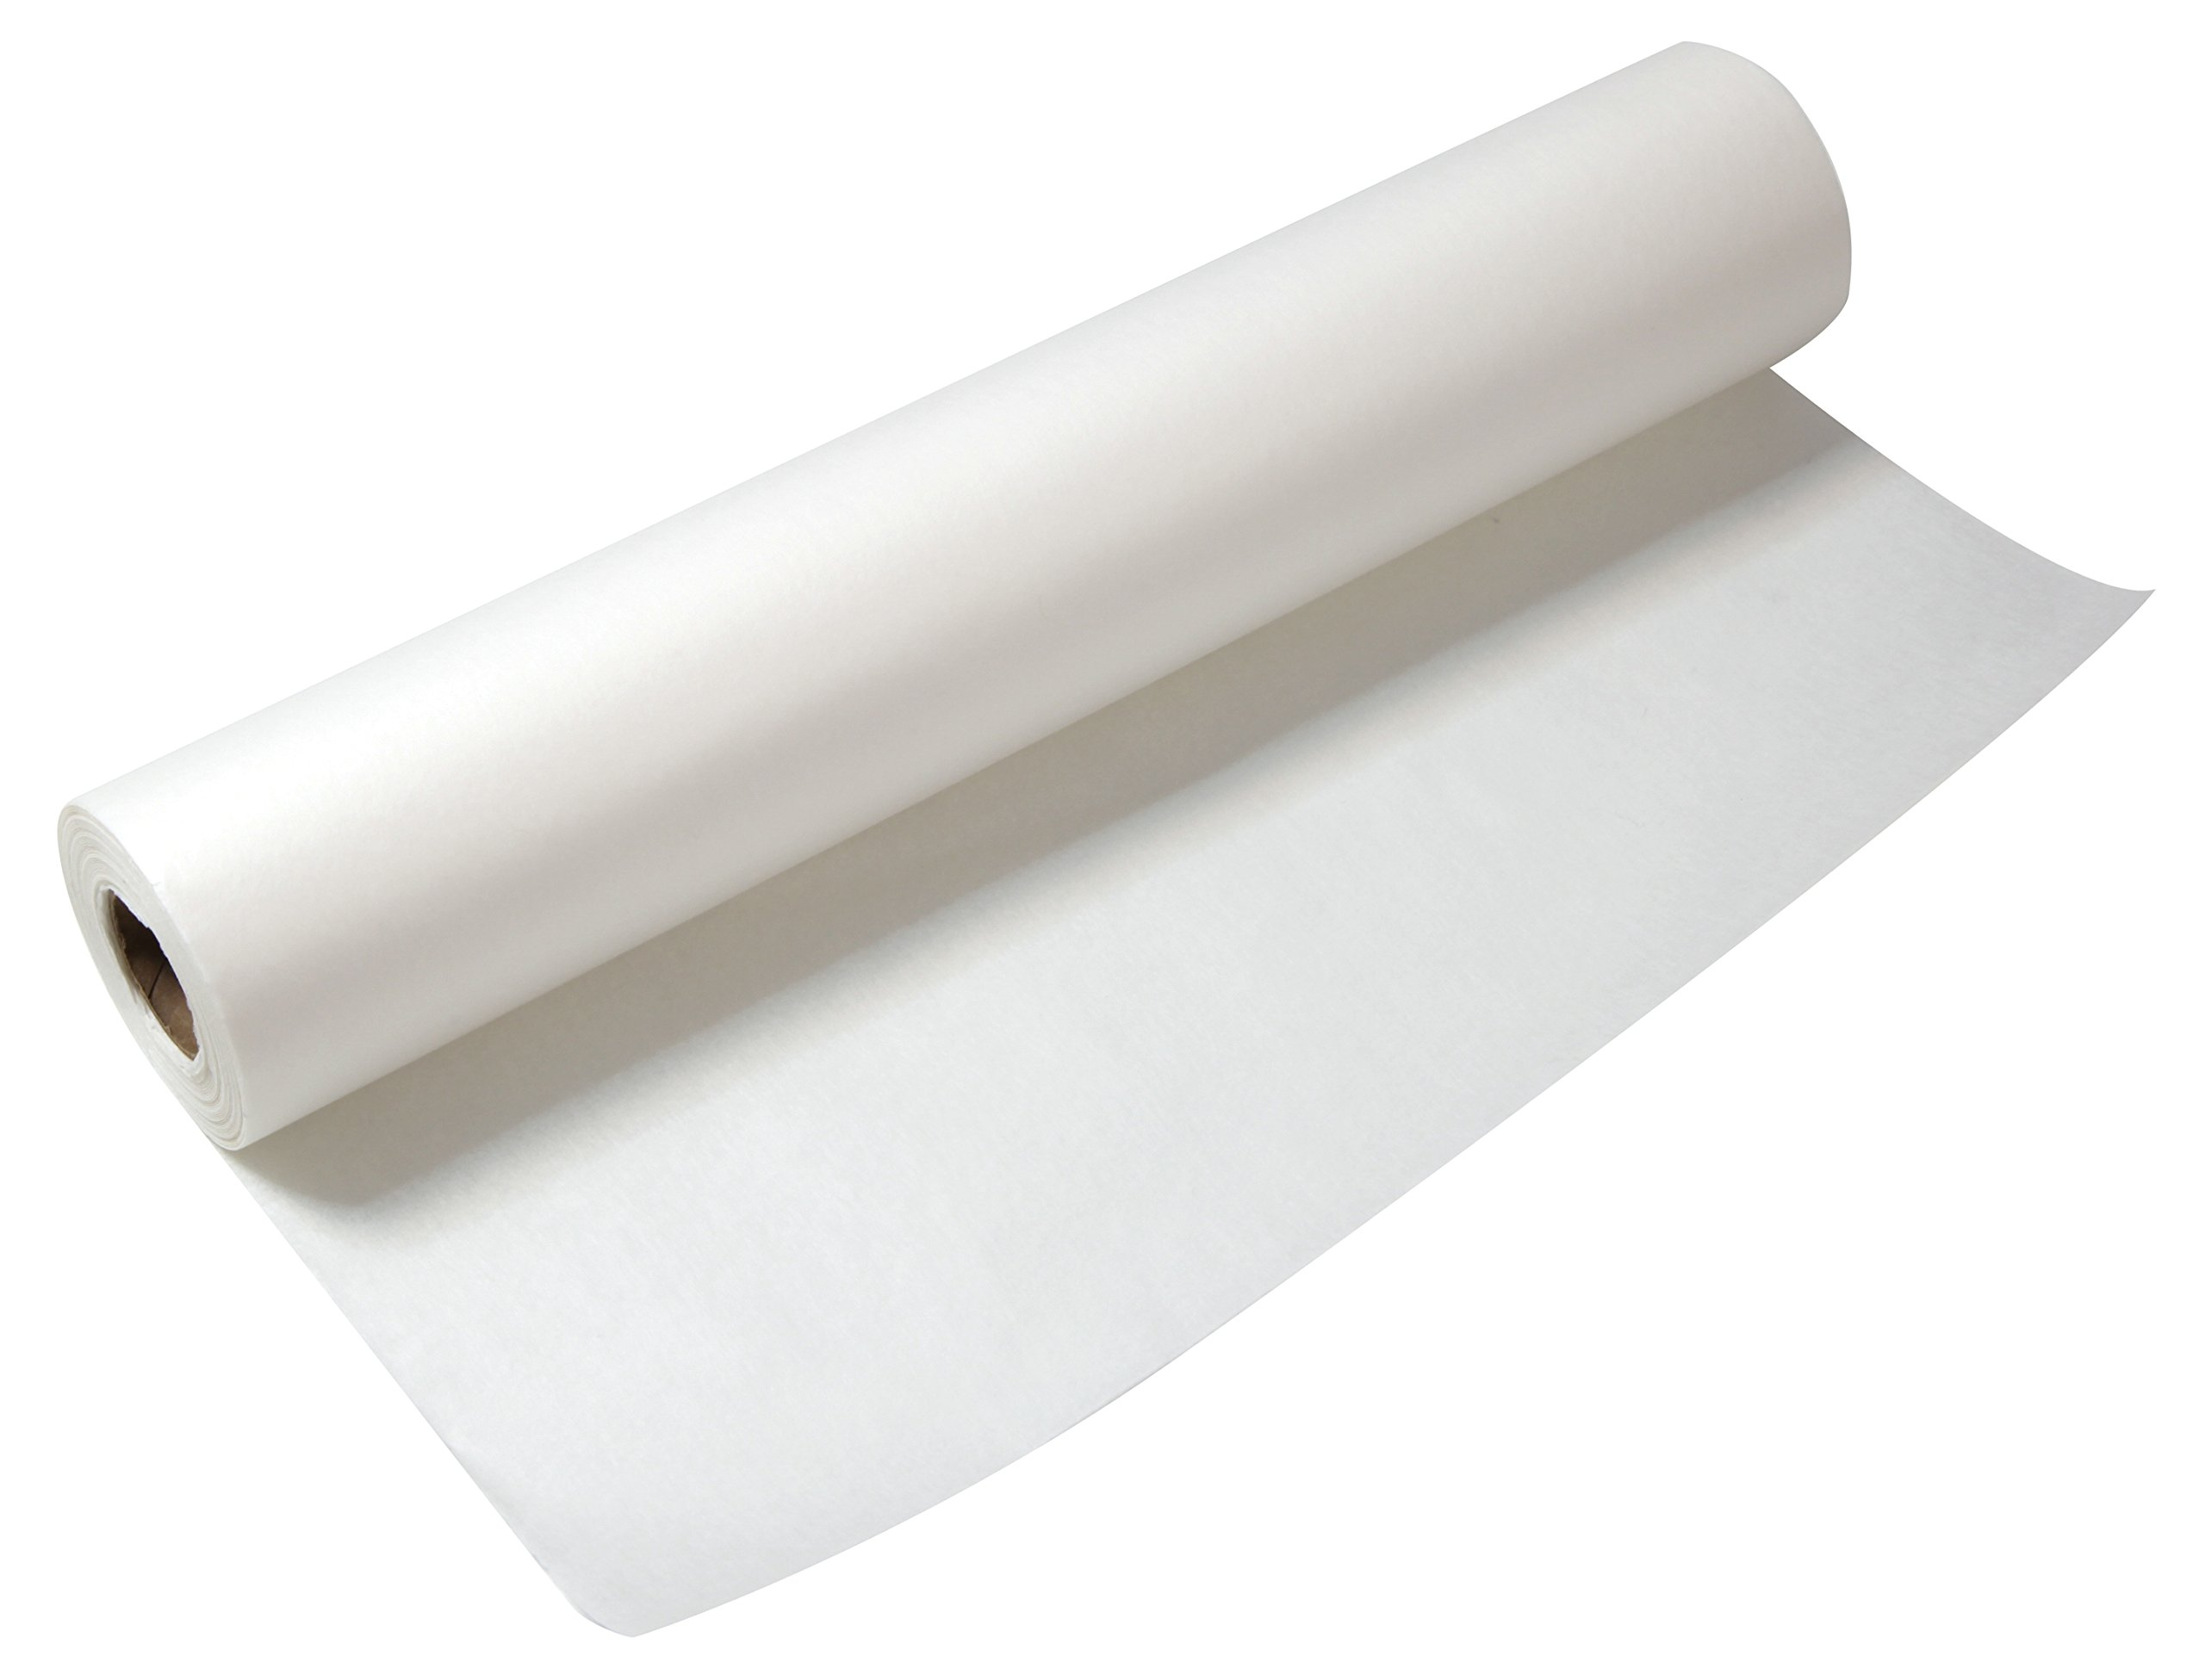 Alvin Lightweight White Tracing Paper Roll 18 inches x 20 yards 55W-C by Alvin